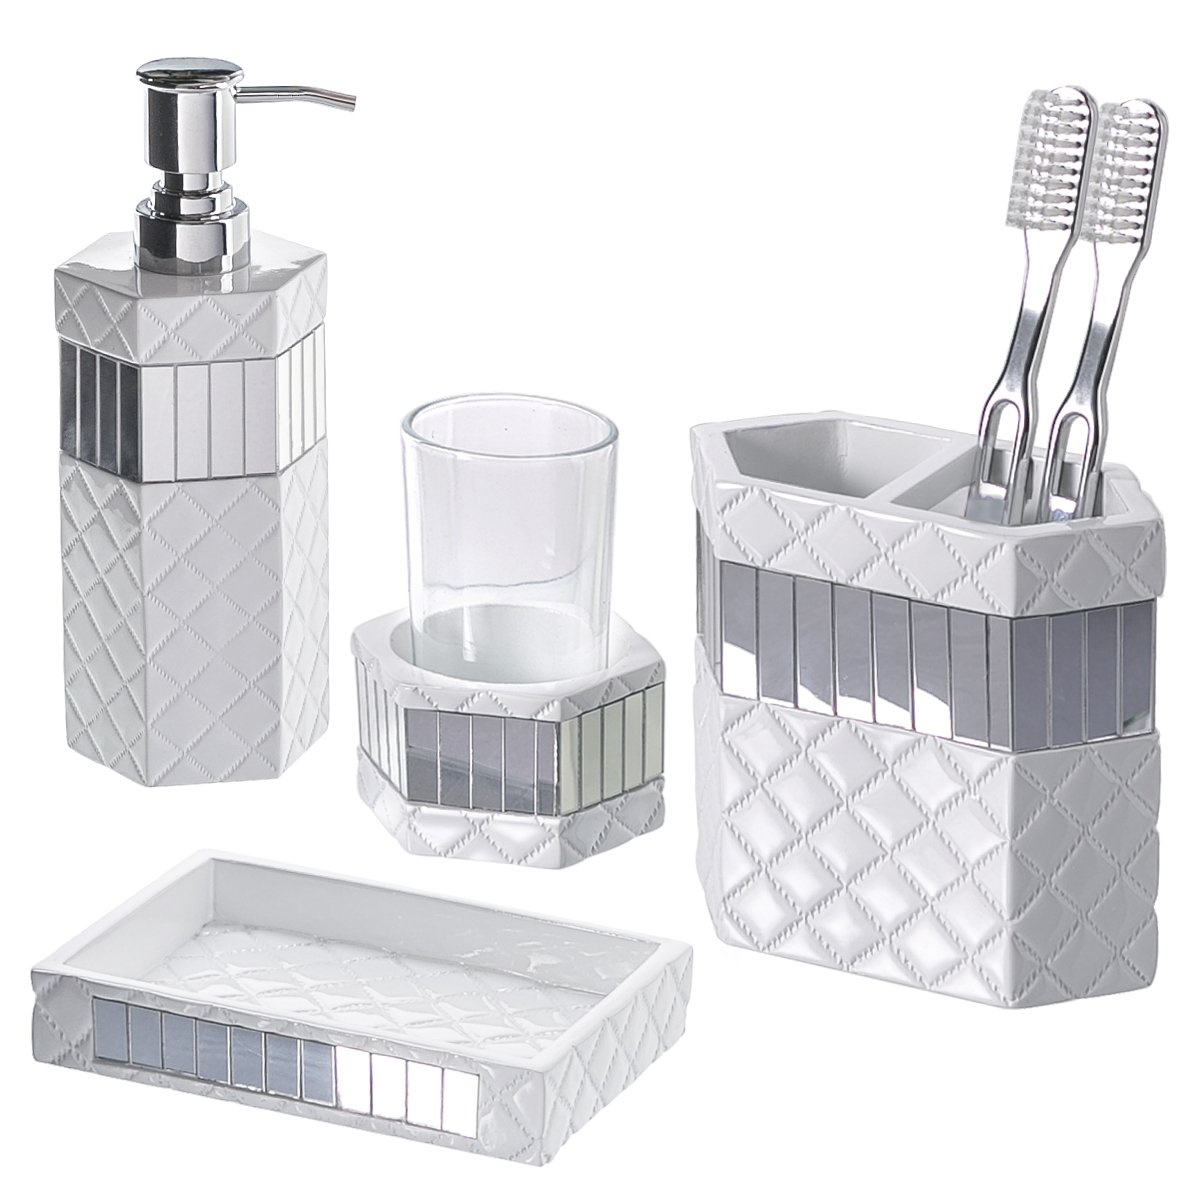 Amazon.com: Creative Scents Quilted Mirror Bathroom Accessories Set,  4 Piece, Includes Soap Dispenser, Toothbrush Holder, Tumbler U0026 Soap Dish,  Gift Package, ...